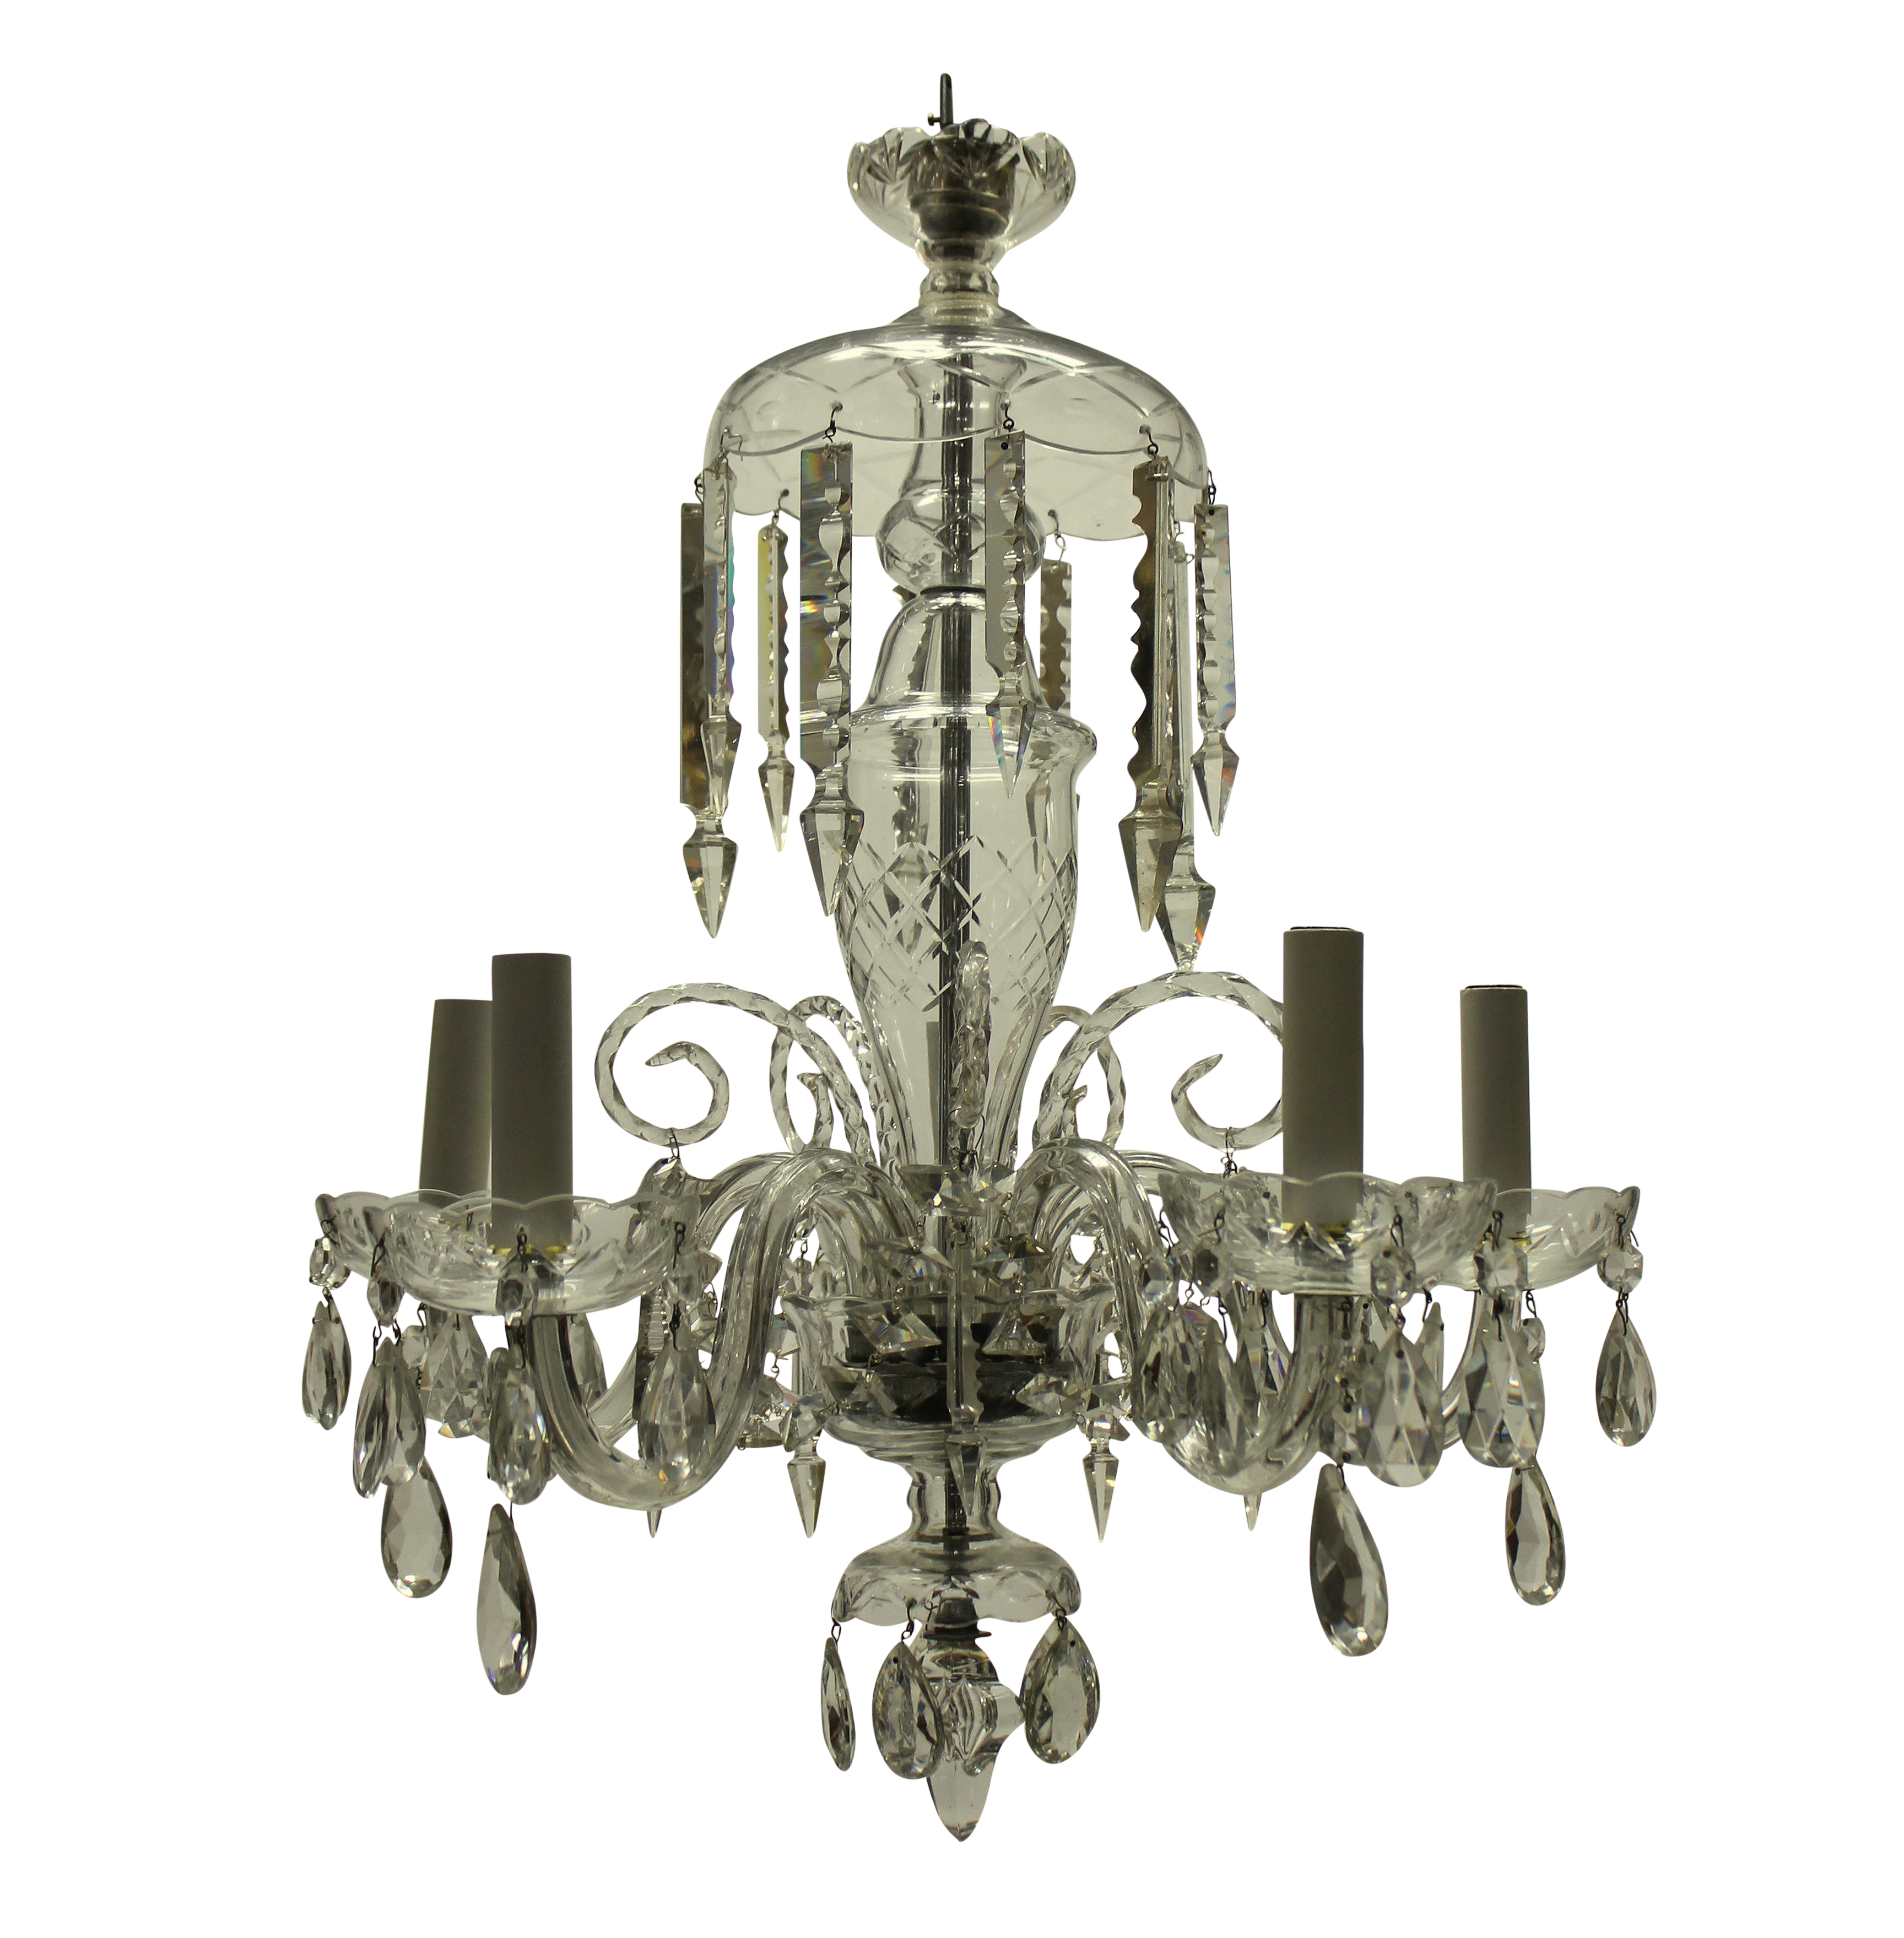 A SMALL ENGLISH CUT GLASS CHANDELIER